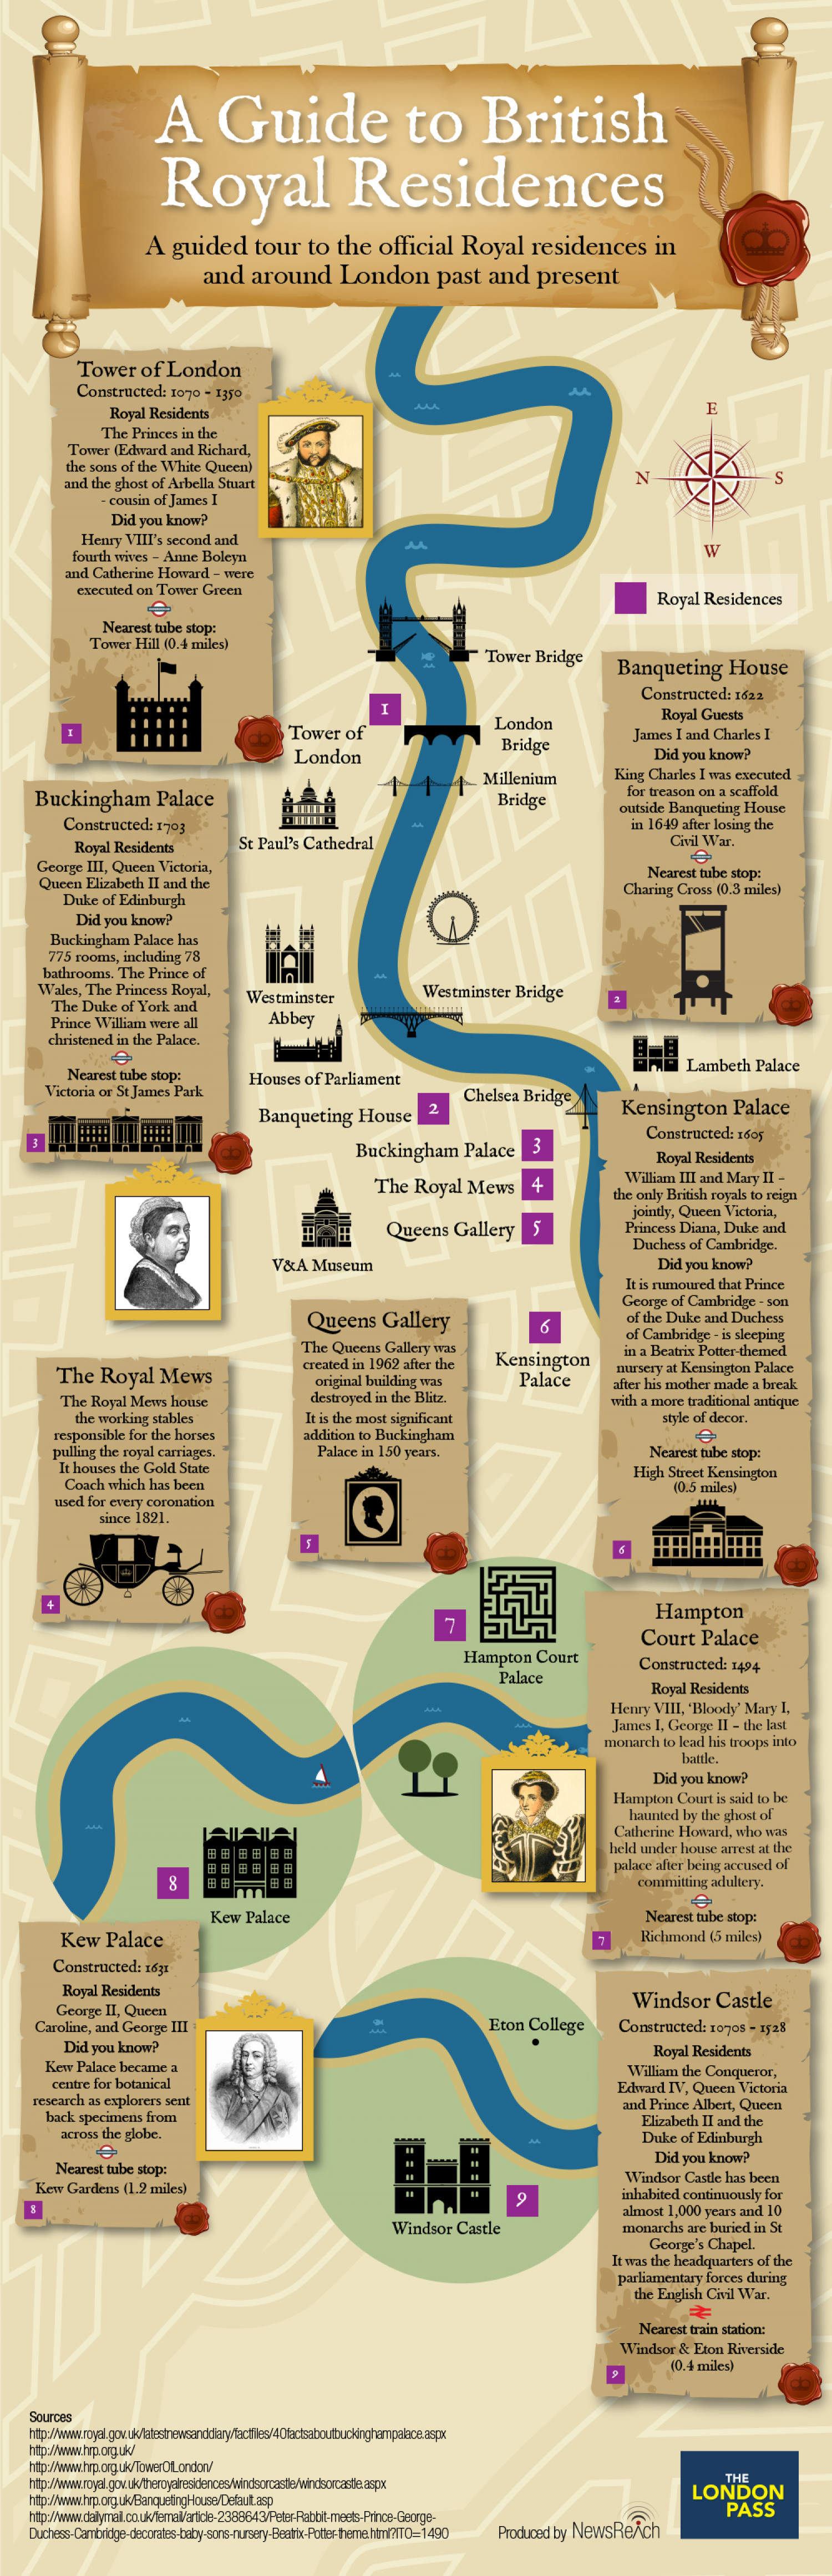 Royal residences in London Infographic